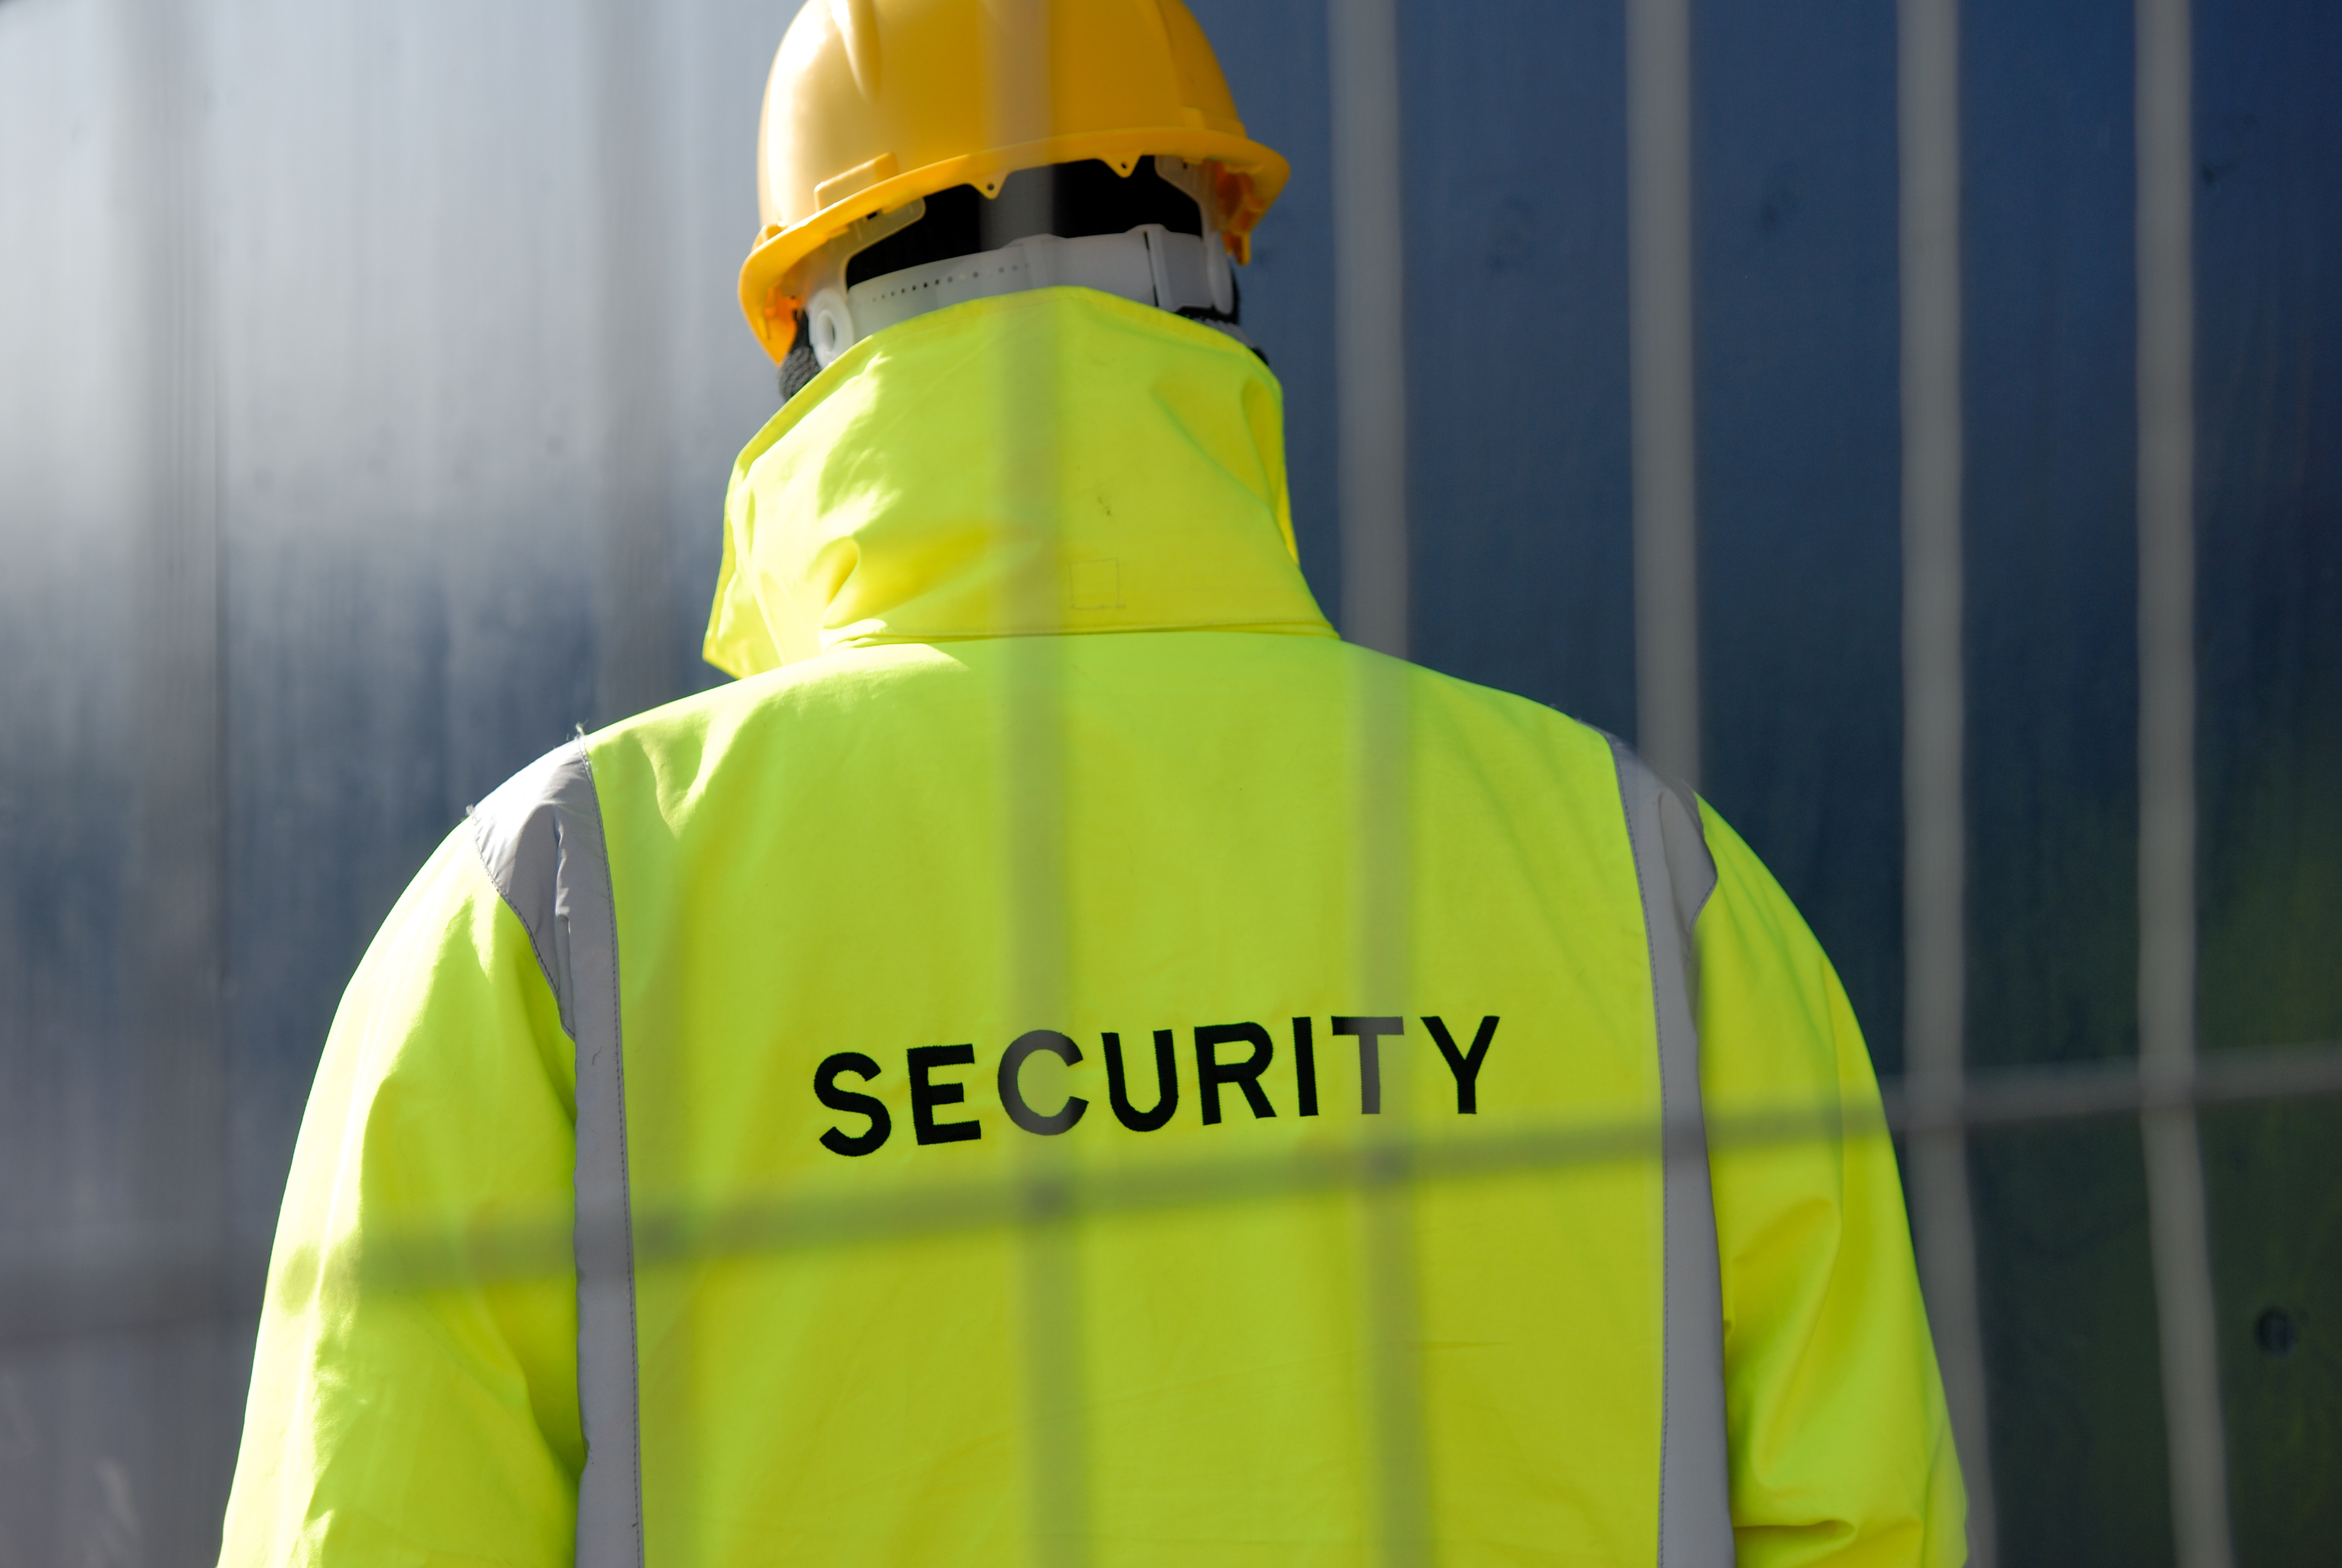 Security <strong>Patrol Services</strong>